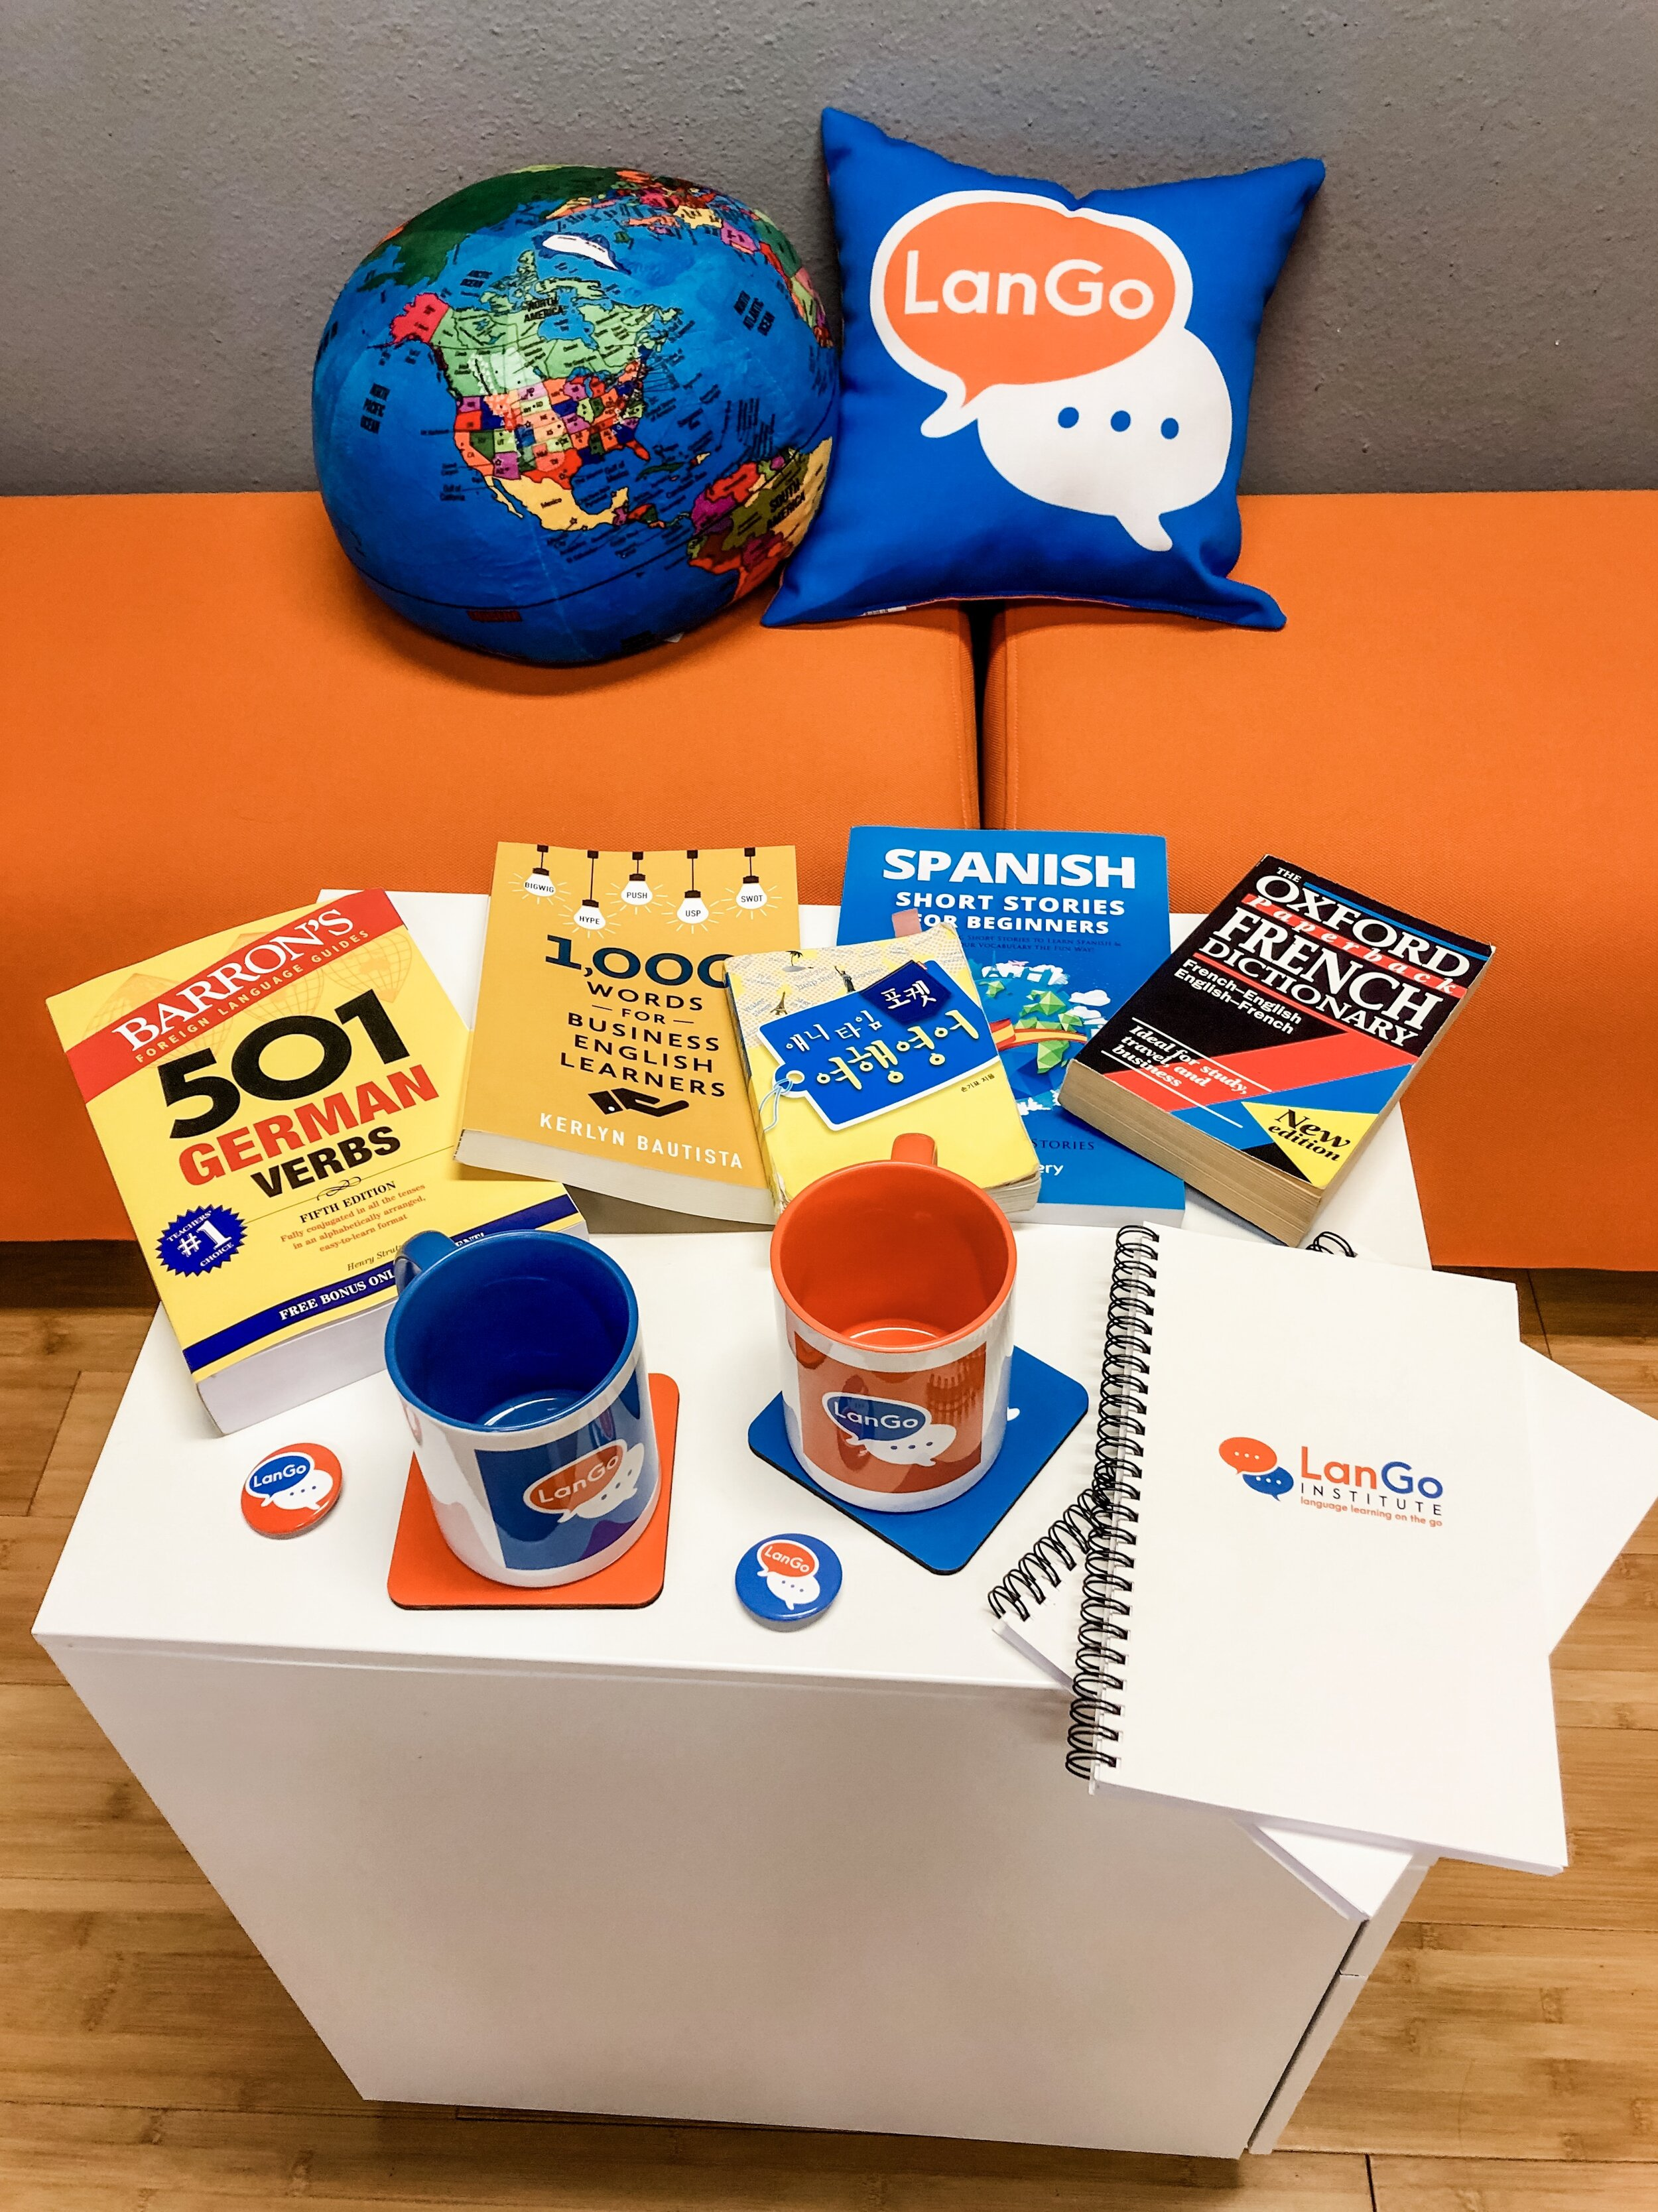 Participate in our fall contest by Sept. 27th to win awesome LanGo swag and language-learning materials!